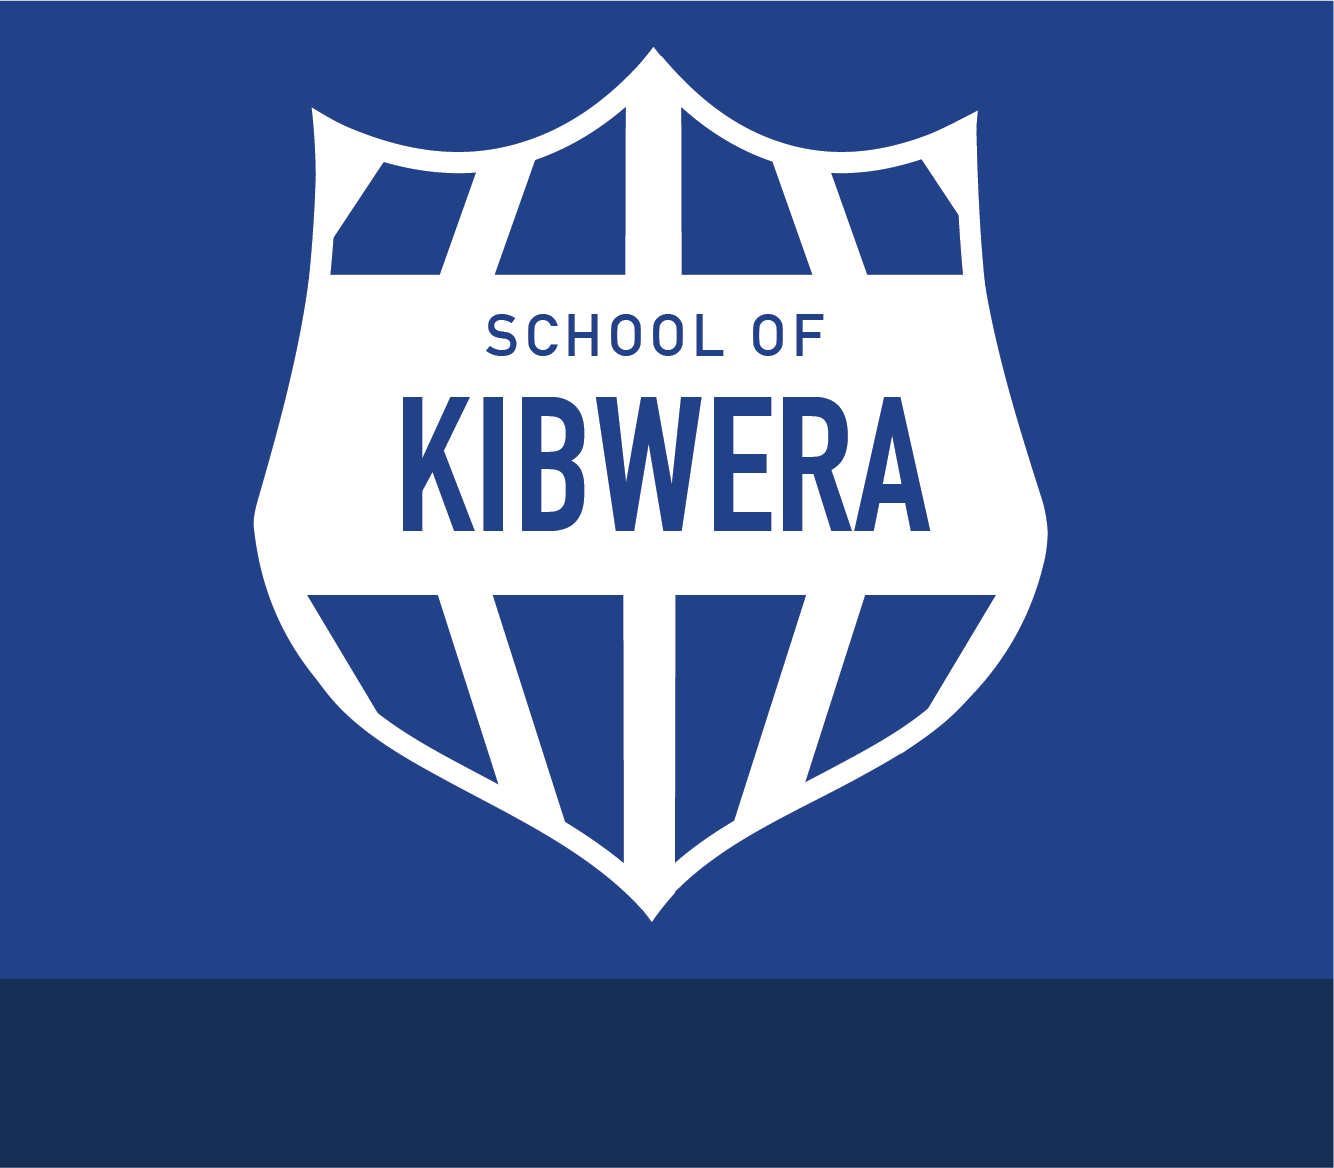 School of kibwera